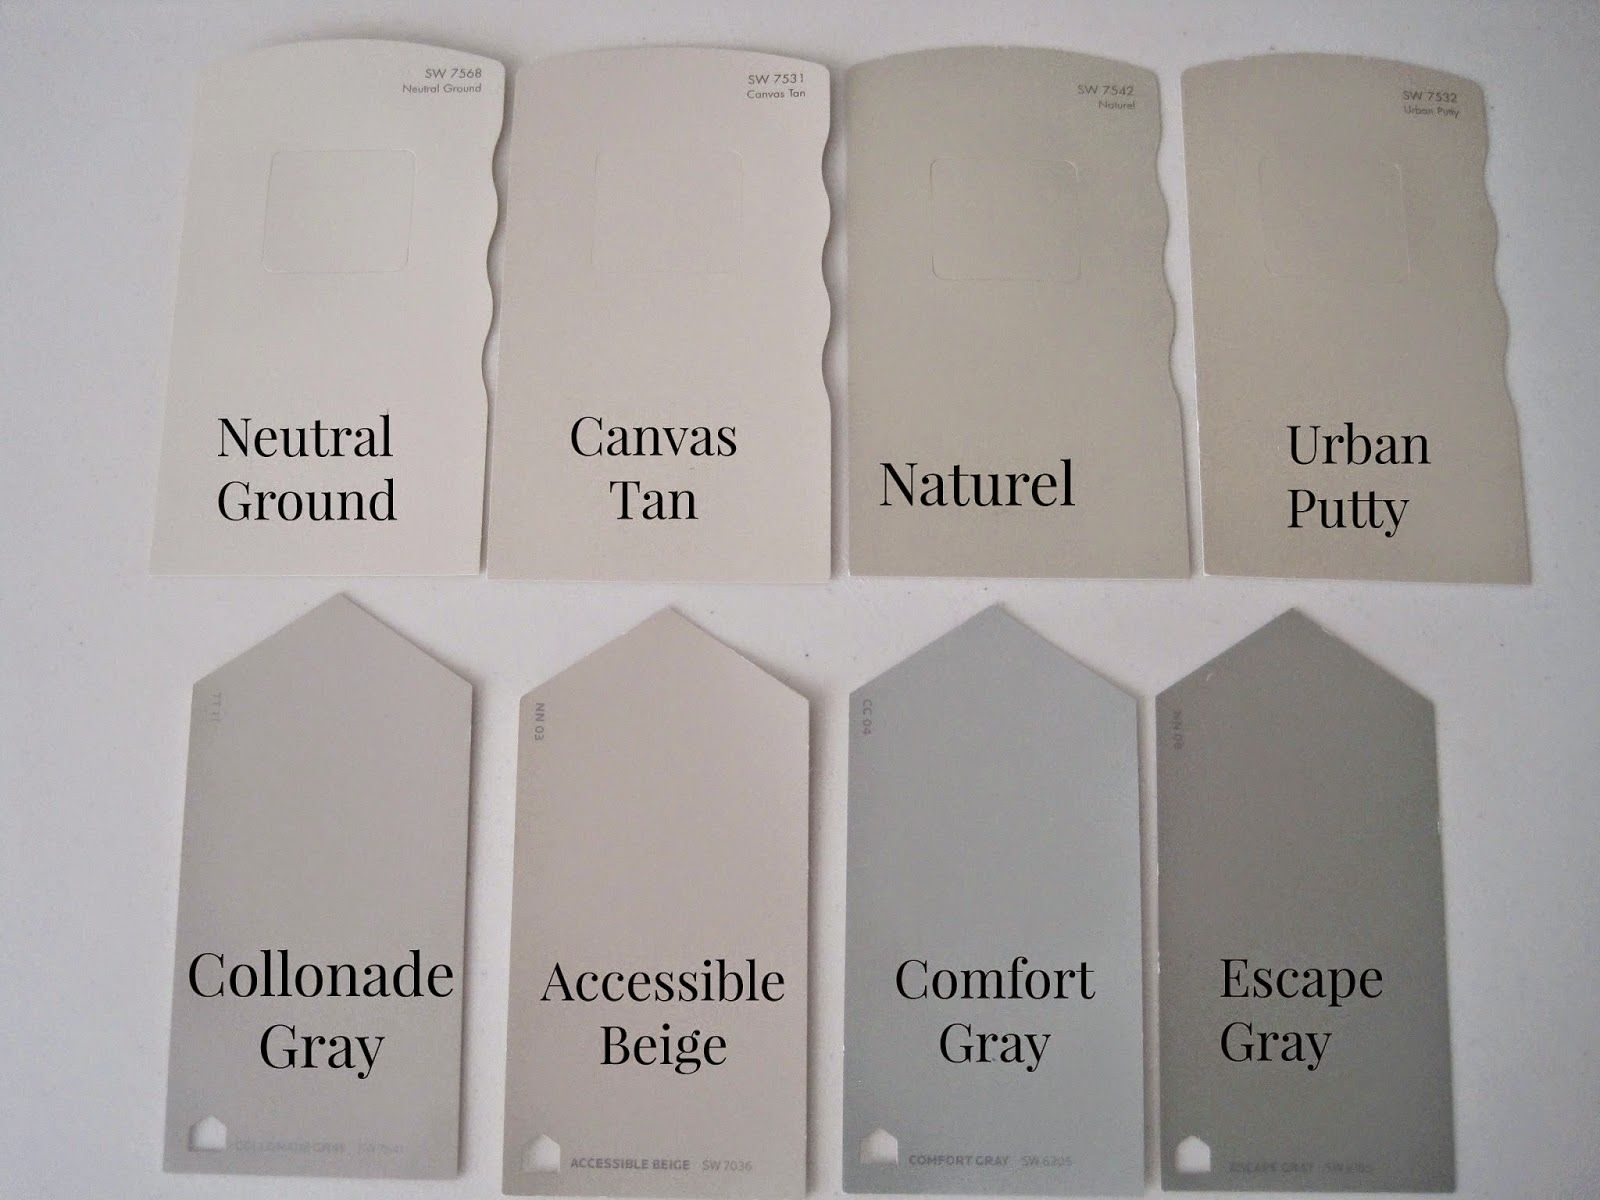 Sherwin williams accessible beige google search paint colors pinterest comfort gray for Keystone grey sherwin williams exterior